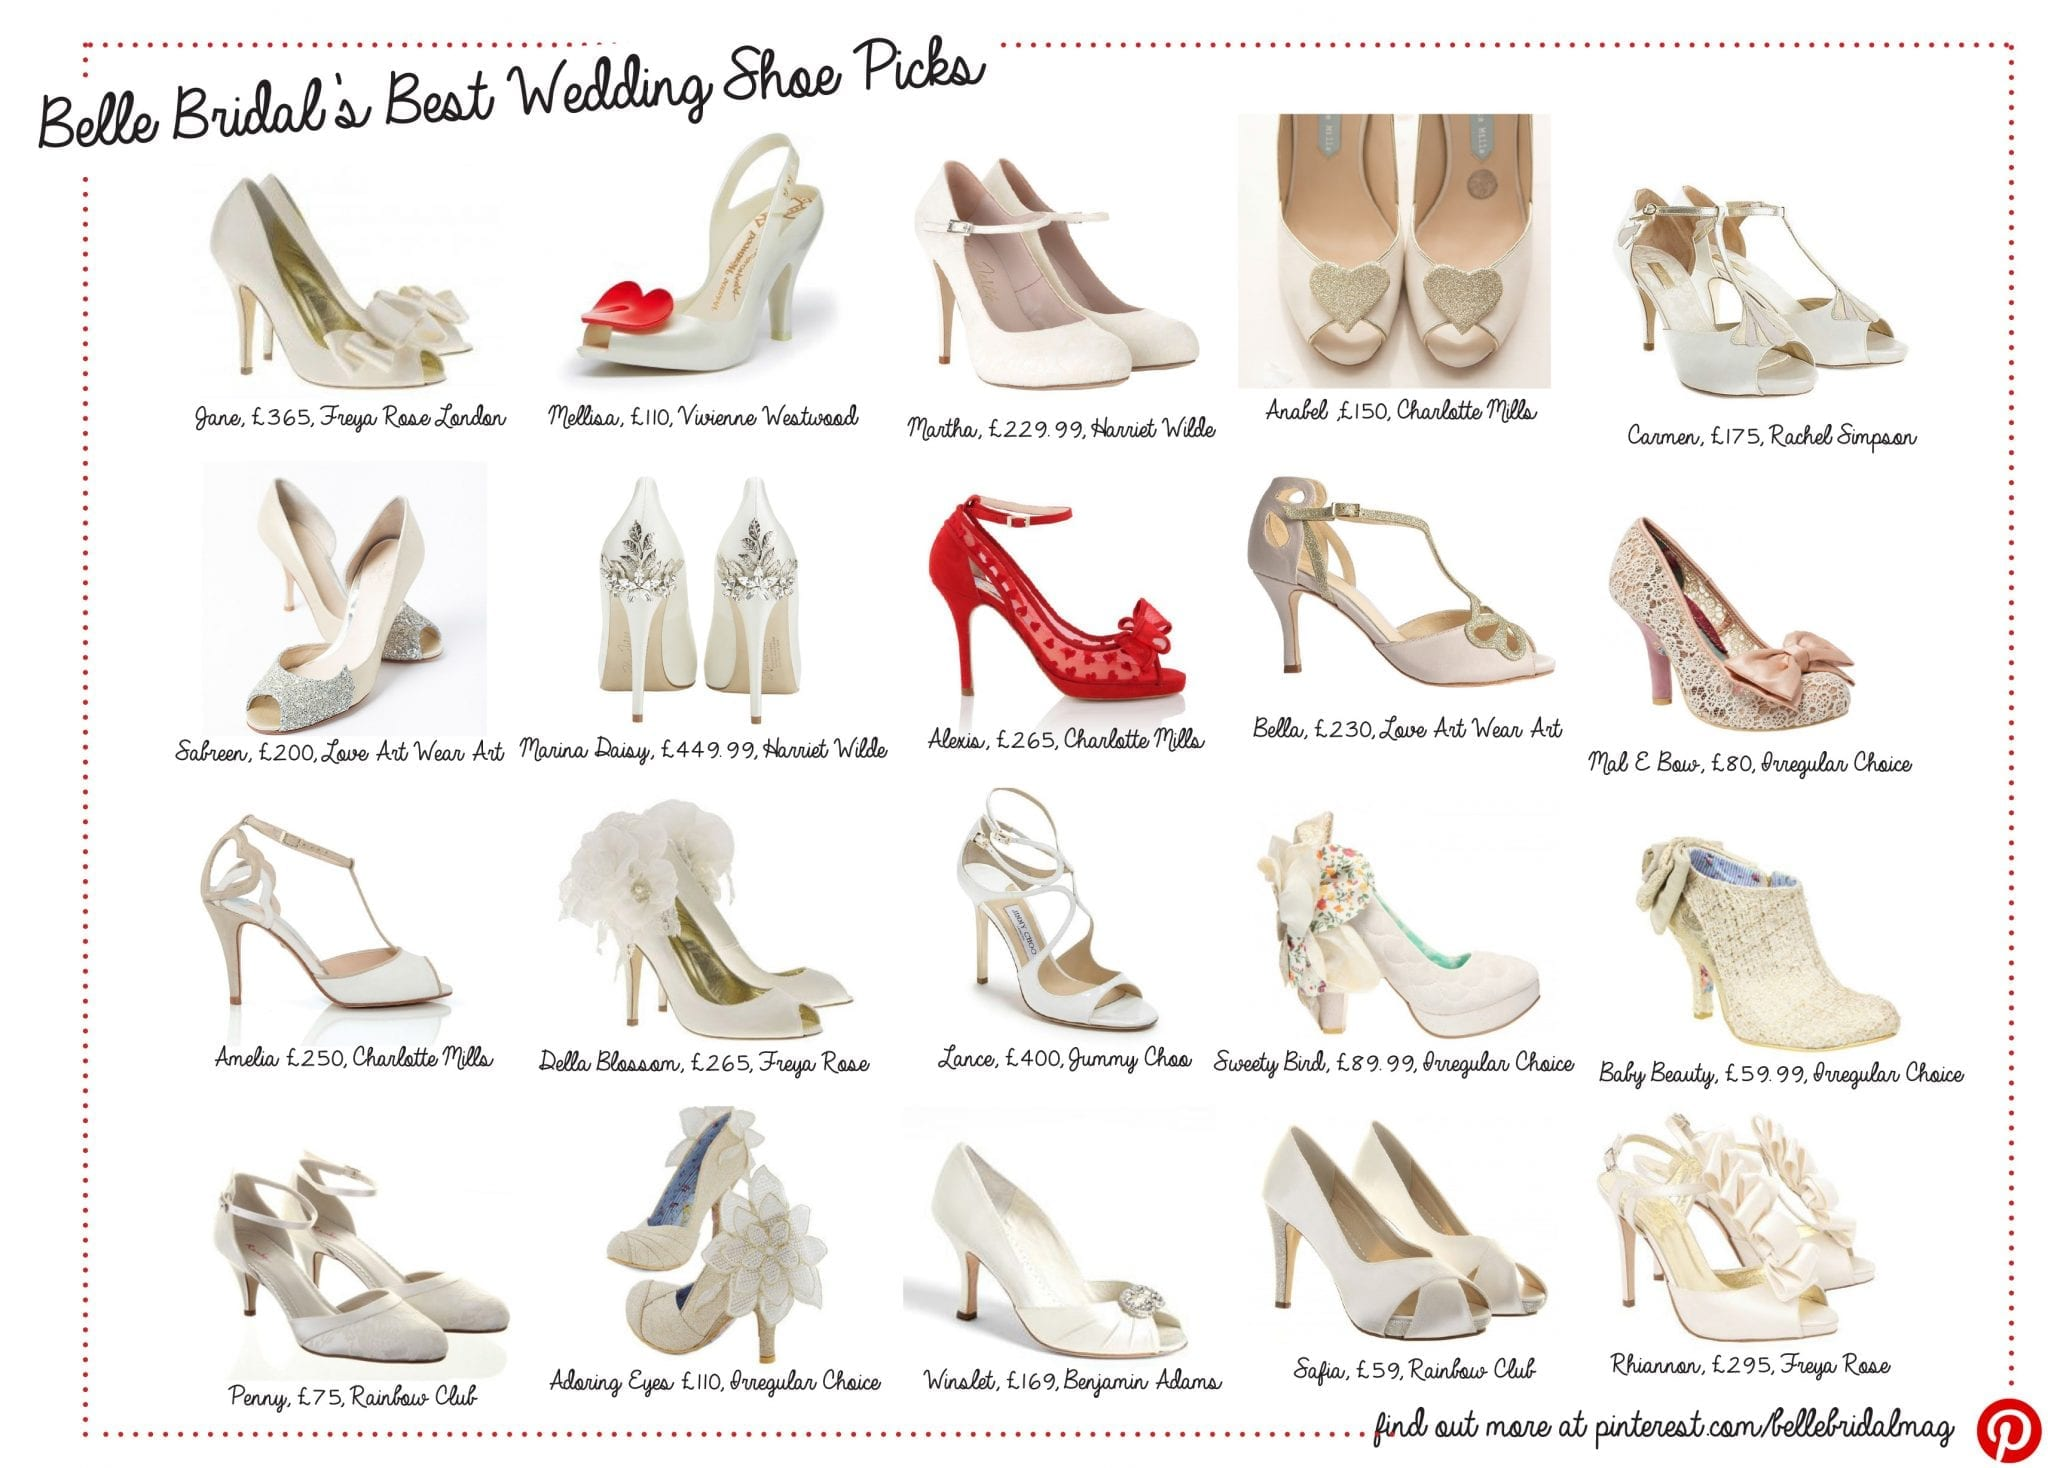 958855f570b9 Shoe Parade! The Best Bridal Shoes for 2015 - As Seen at The Wedding Wonder  Show - Belle Bridal Magazine